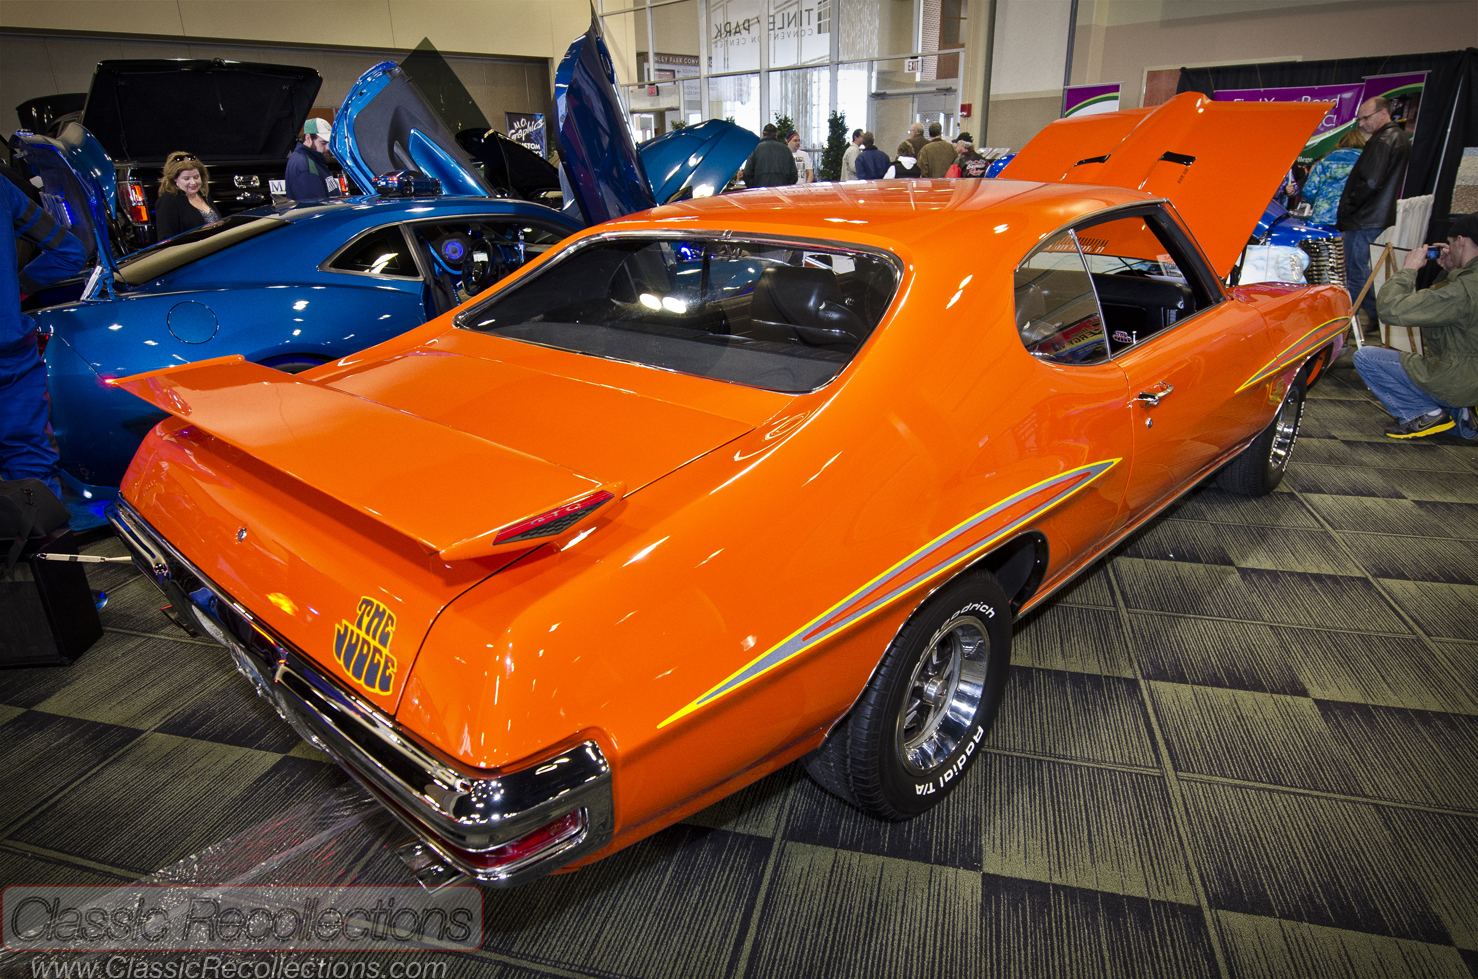 Crcse Show Custom Rides Car Show And Expo Tinley Park Il